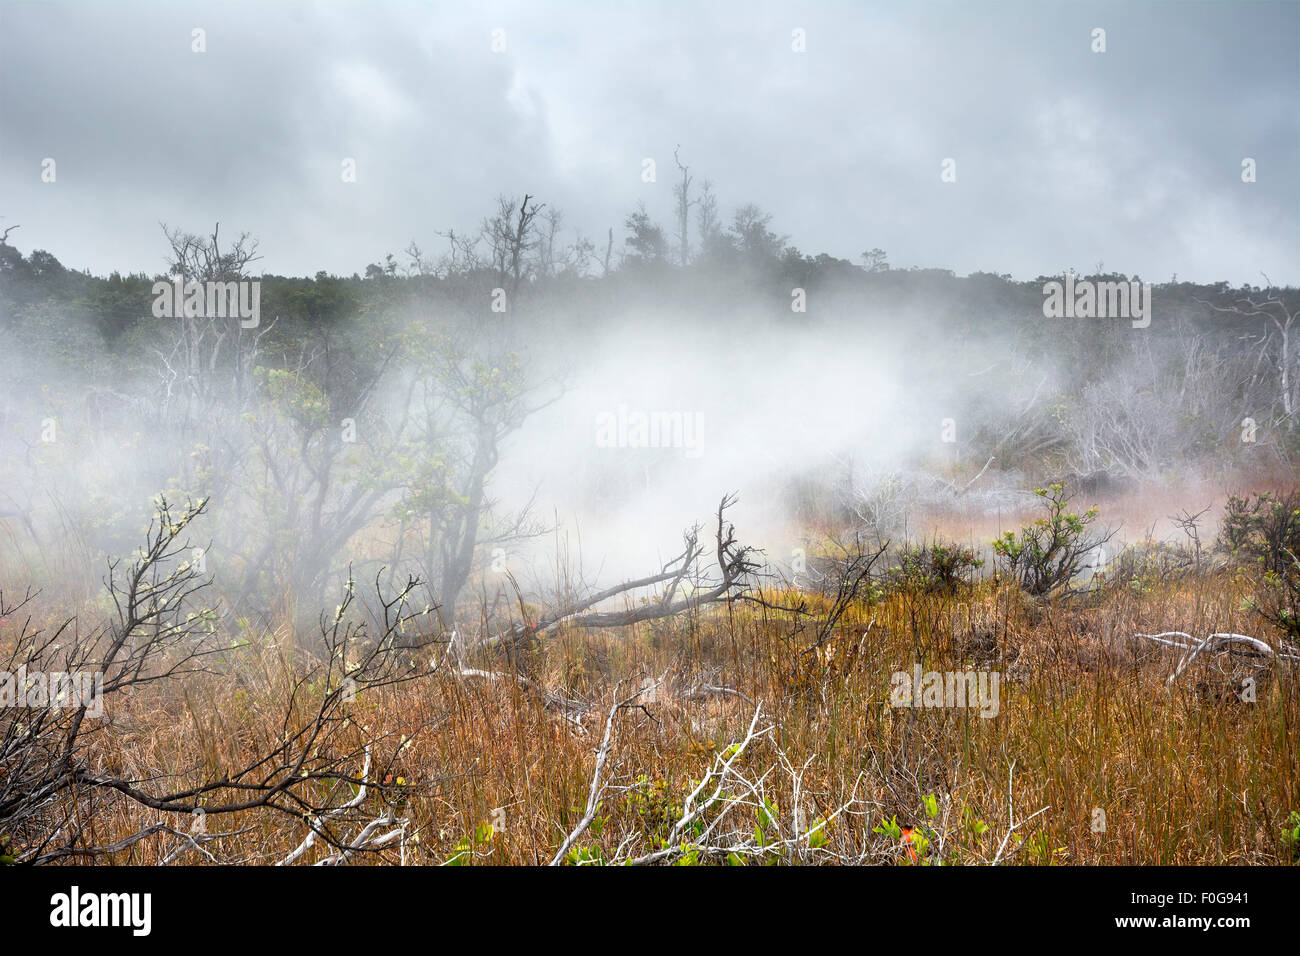 Natural steam rising from volcanic steam vents in the earth at Volcano National Park, Kilauea Hawaii. - Stock Image